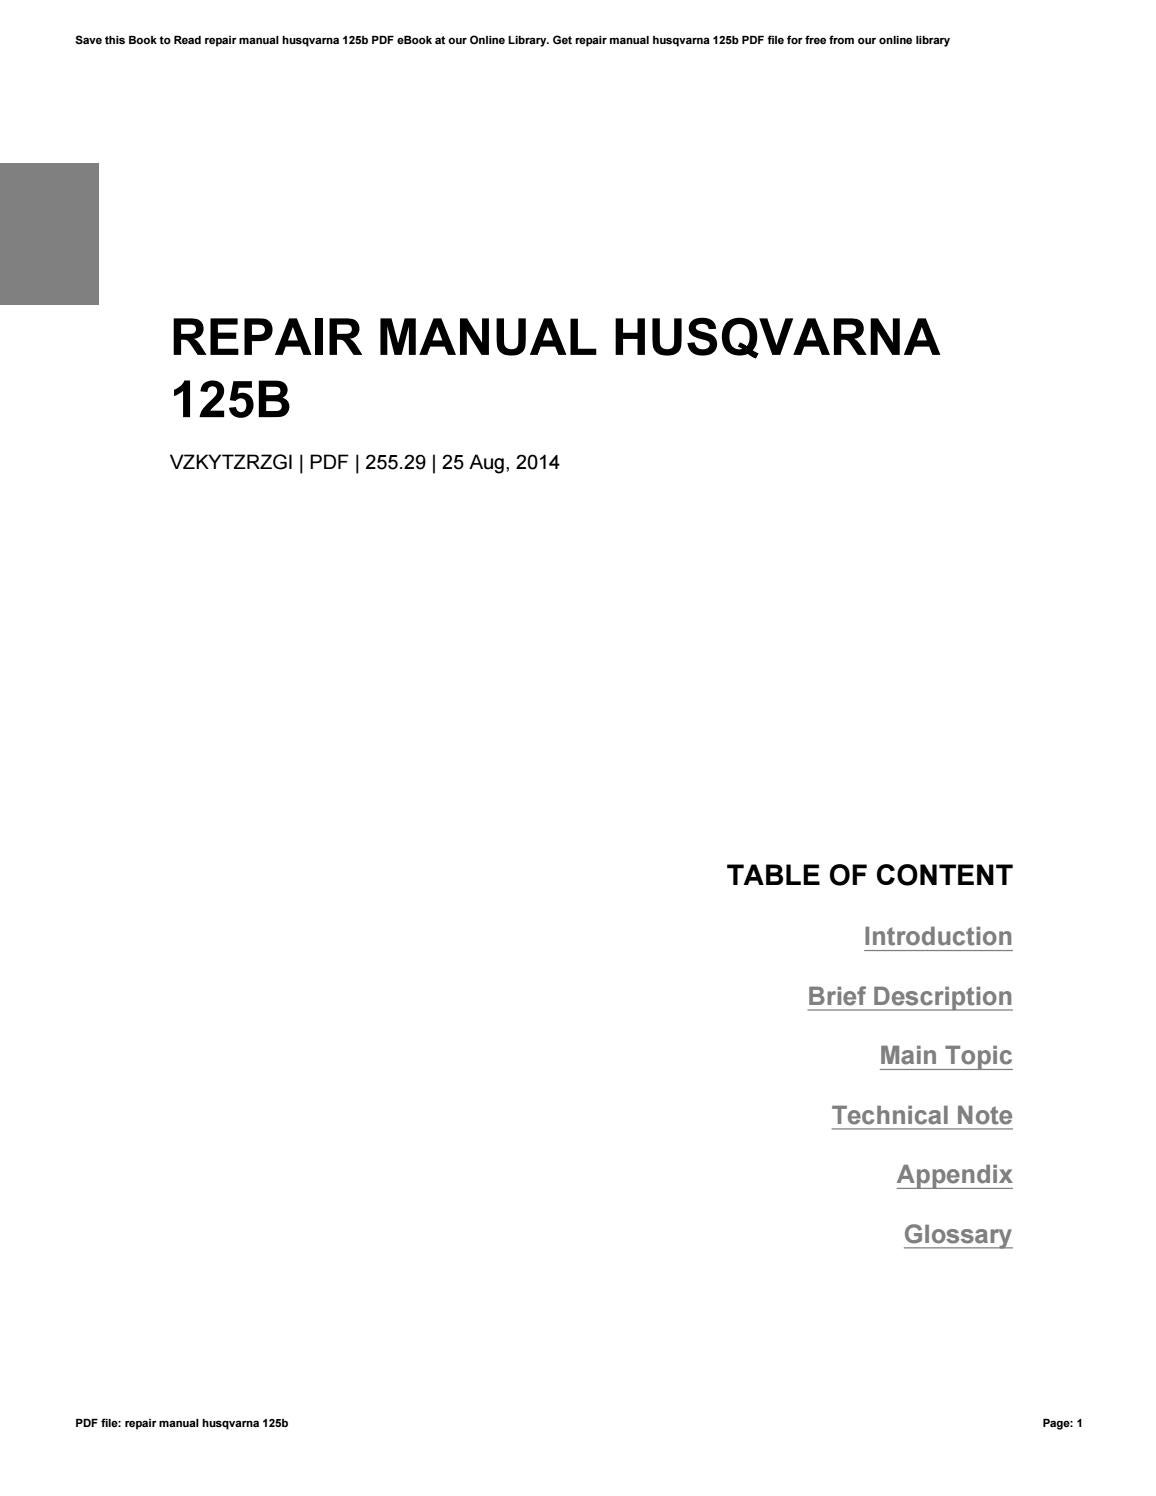 free husqvarna 125b repair manual pdf